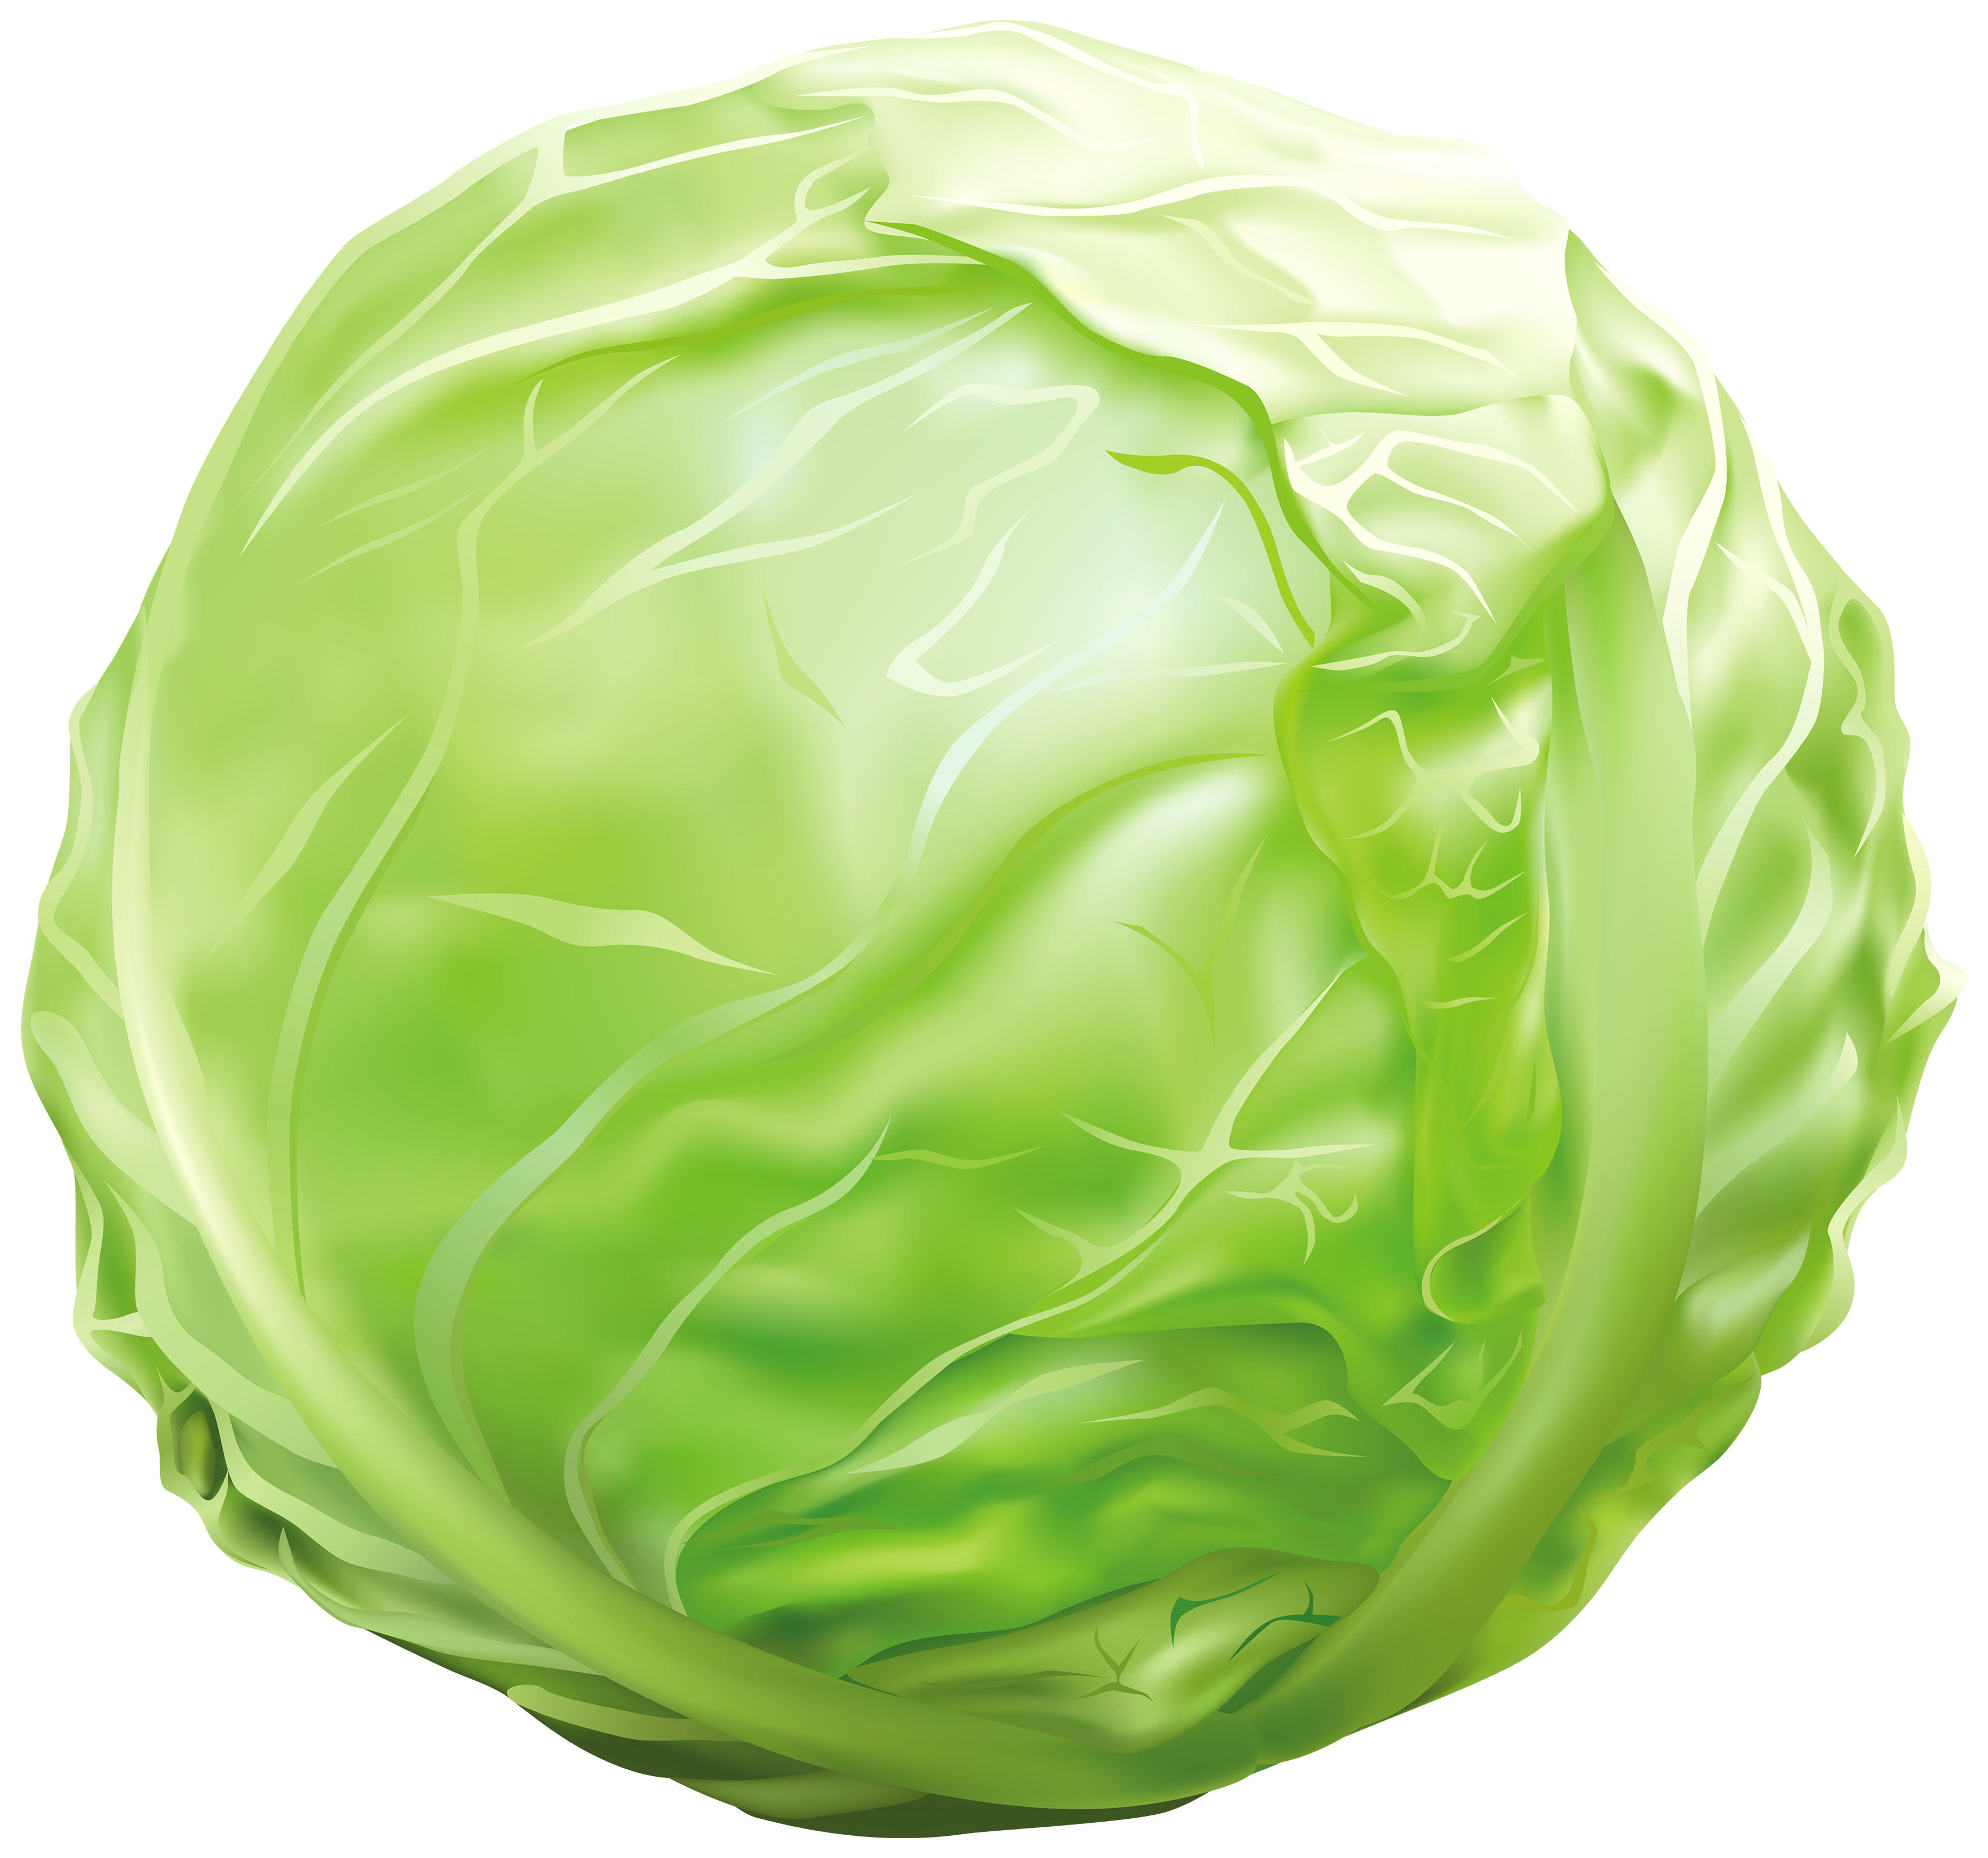 clip art free Cabbage clipart. Png image gallery yopriceville.